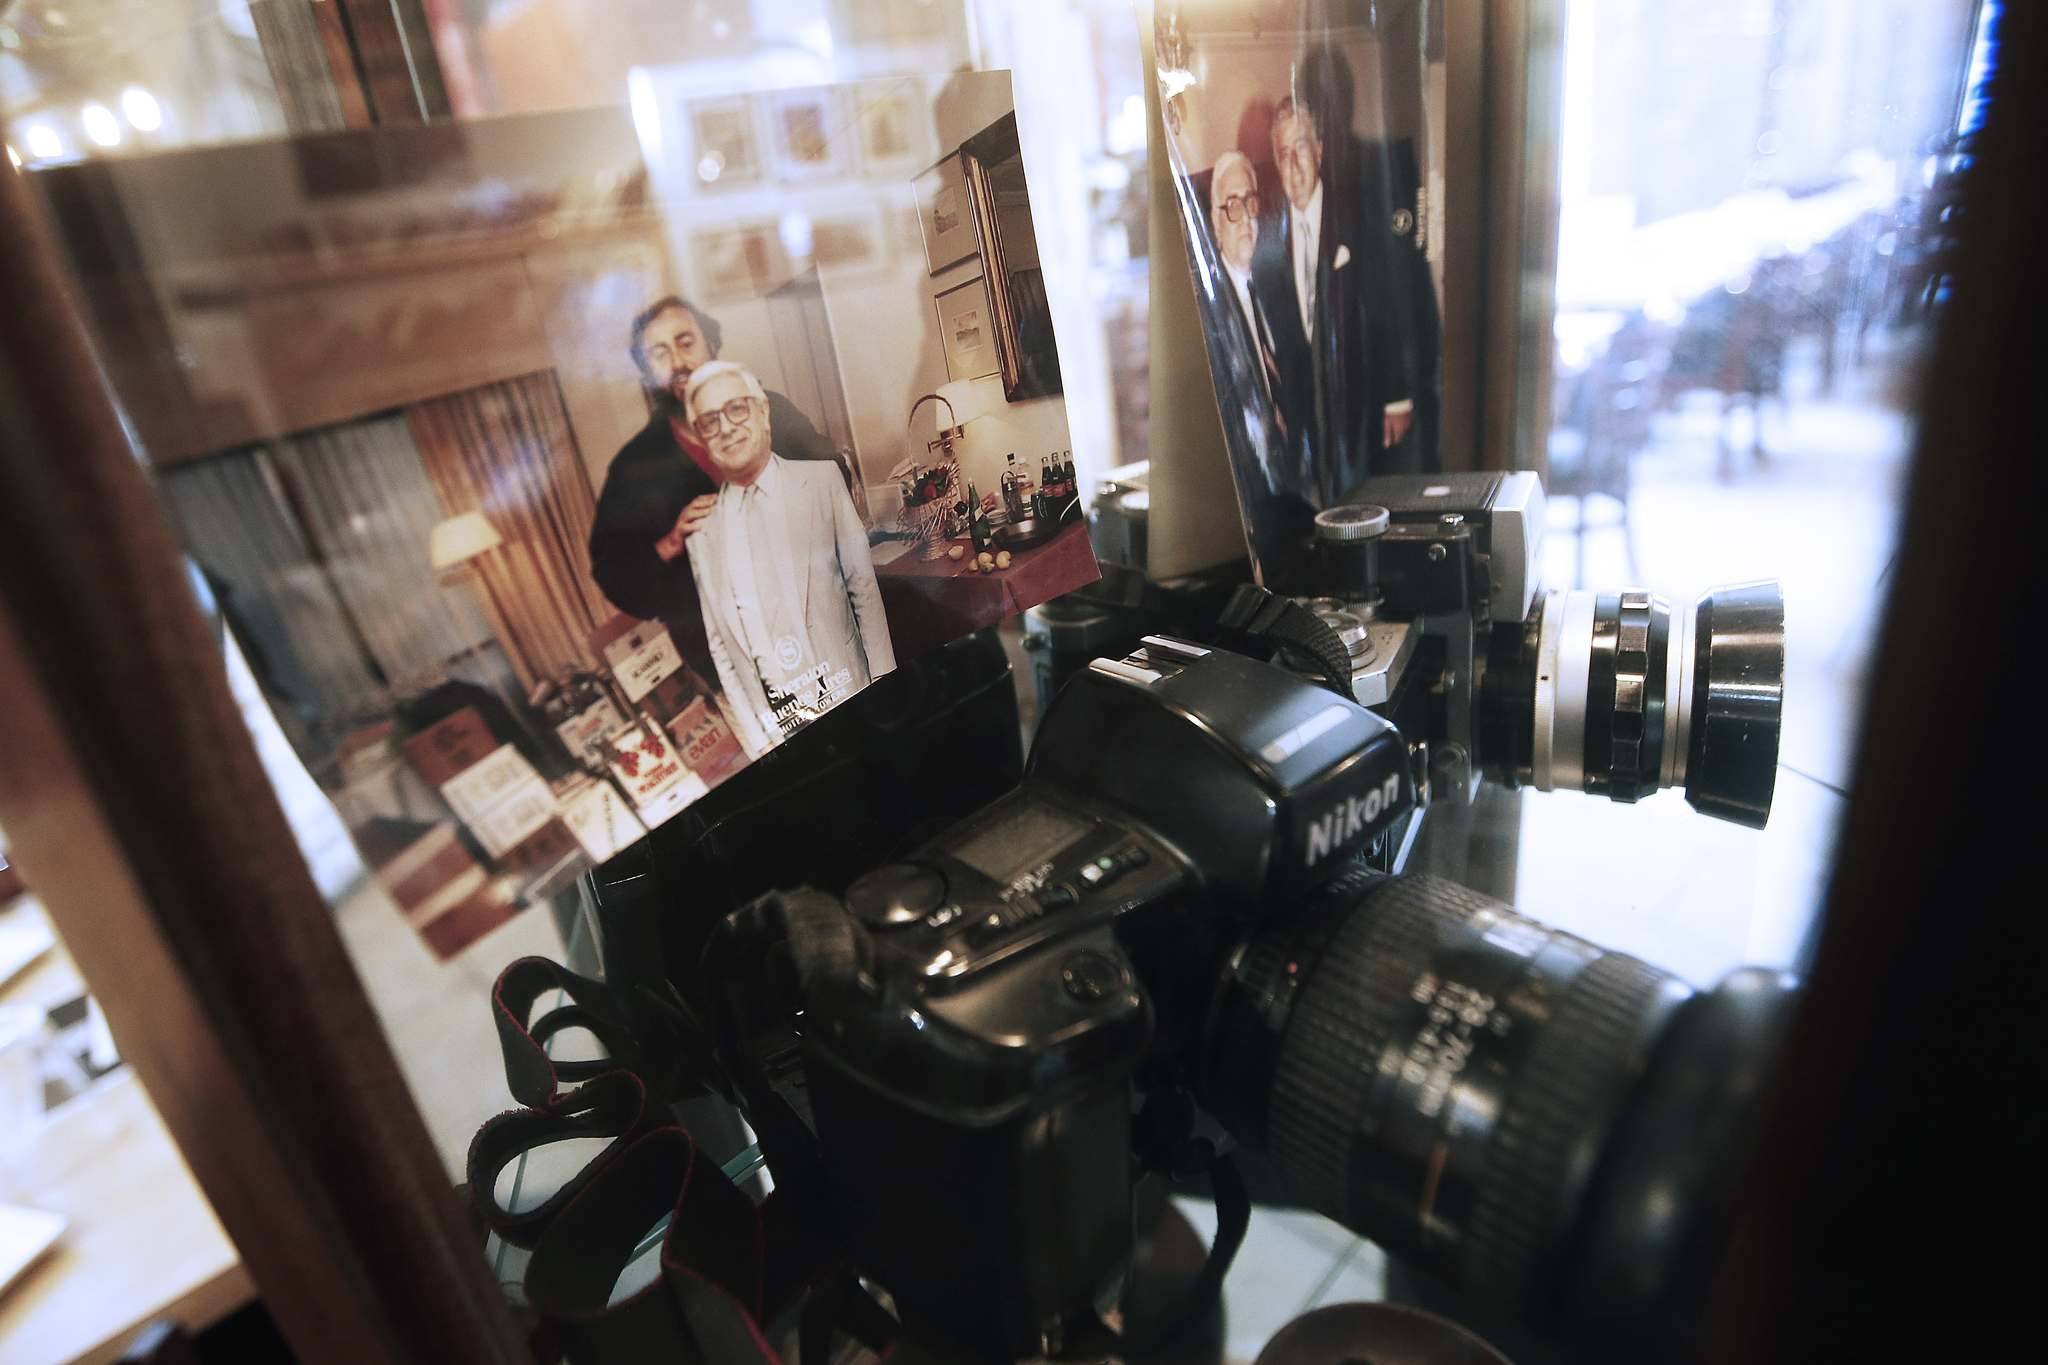 Photos on display in a cabinet at Alfonso Maury's pizzeria include images of his father, Hector, with Pavorratti and Tony Bennett beside his father's cameras. (John Woods / Winnipeg Free Press)</p></p>